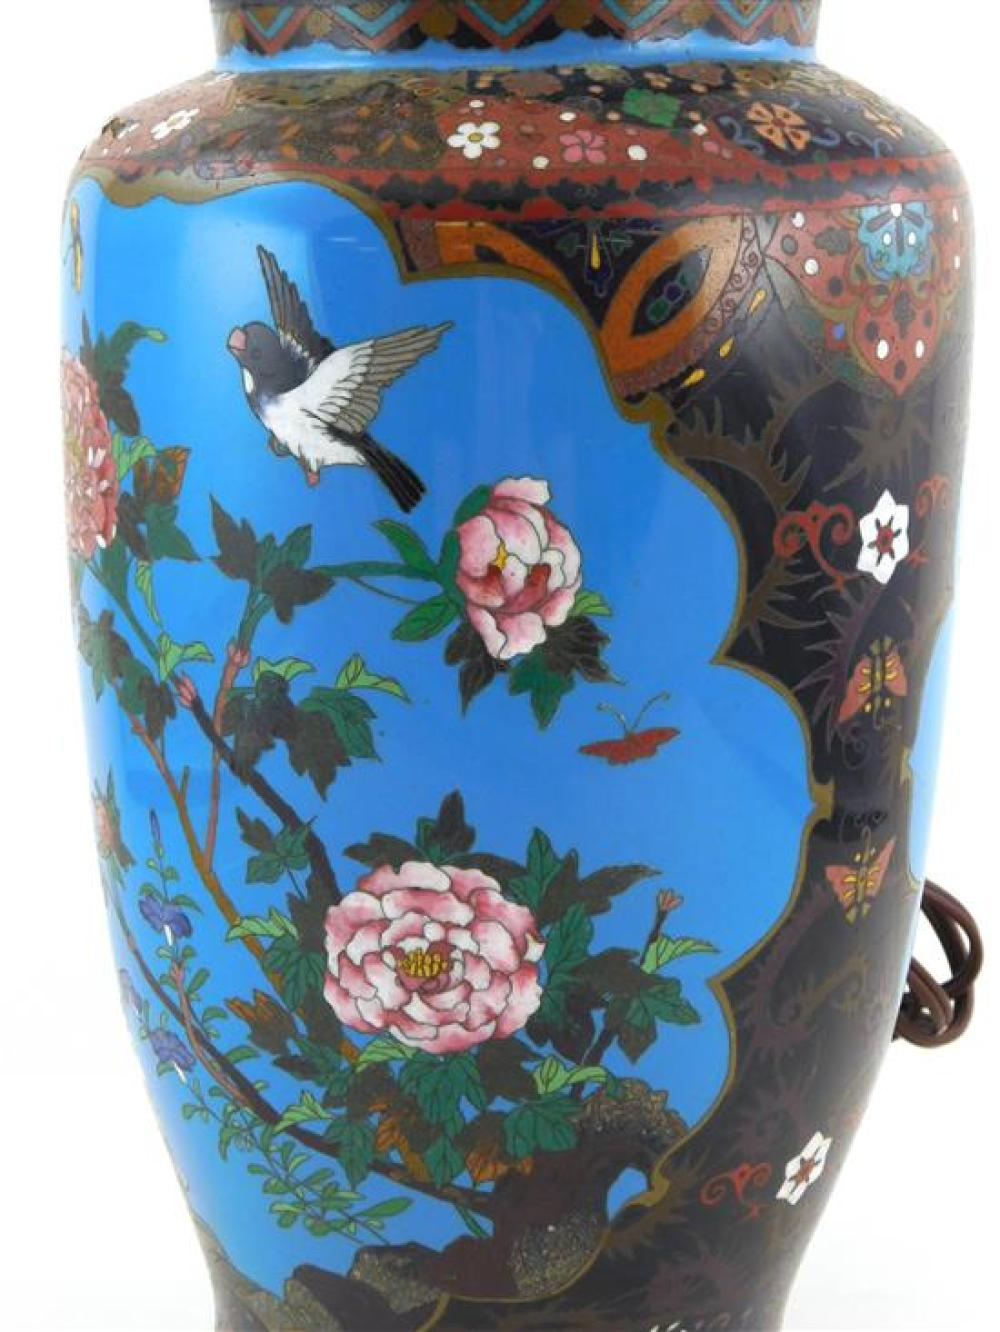 ASIAN: Cloisonne lamp base, black ground with two turquoise scenic panels, with birds, wear consistent with age and use including so...